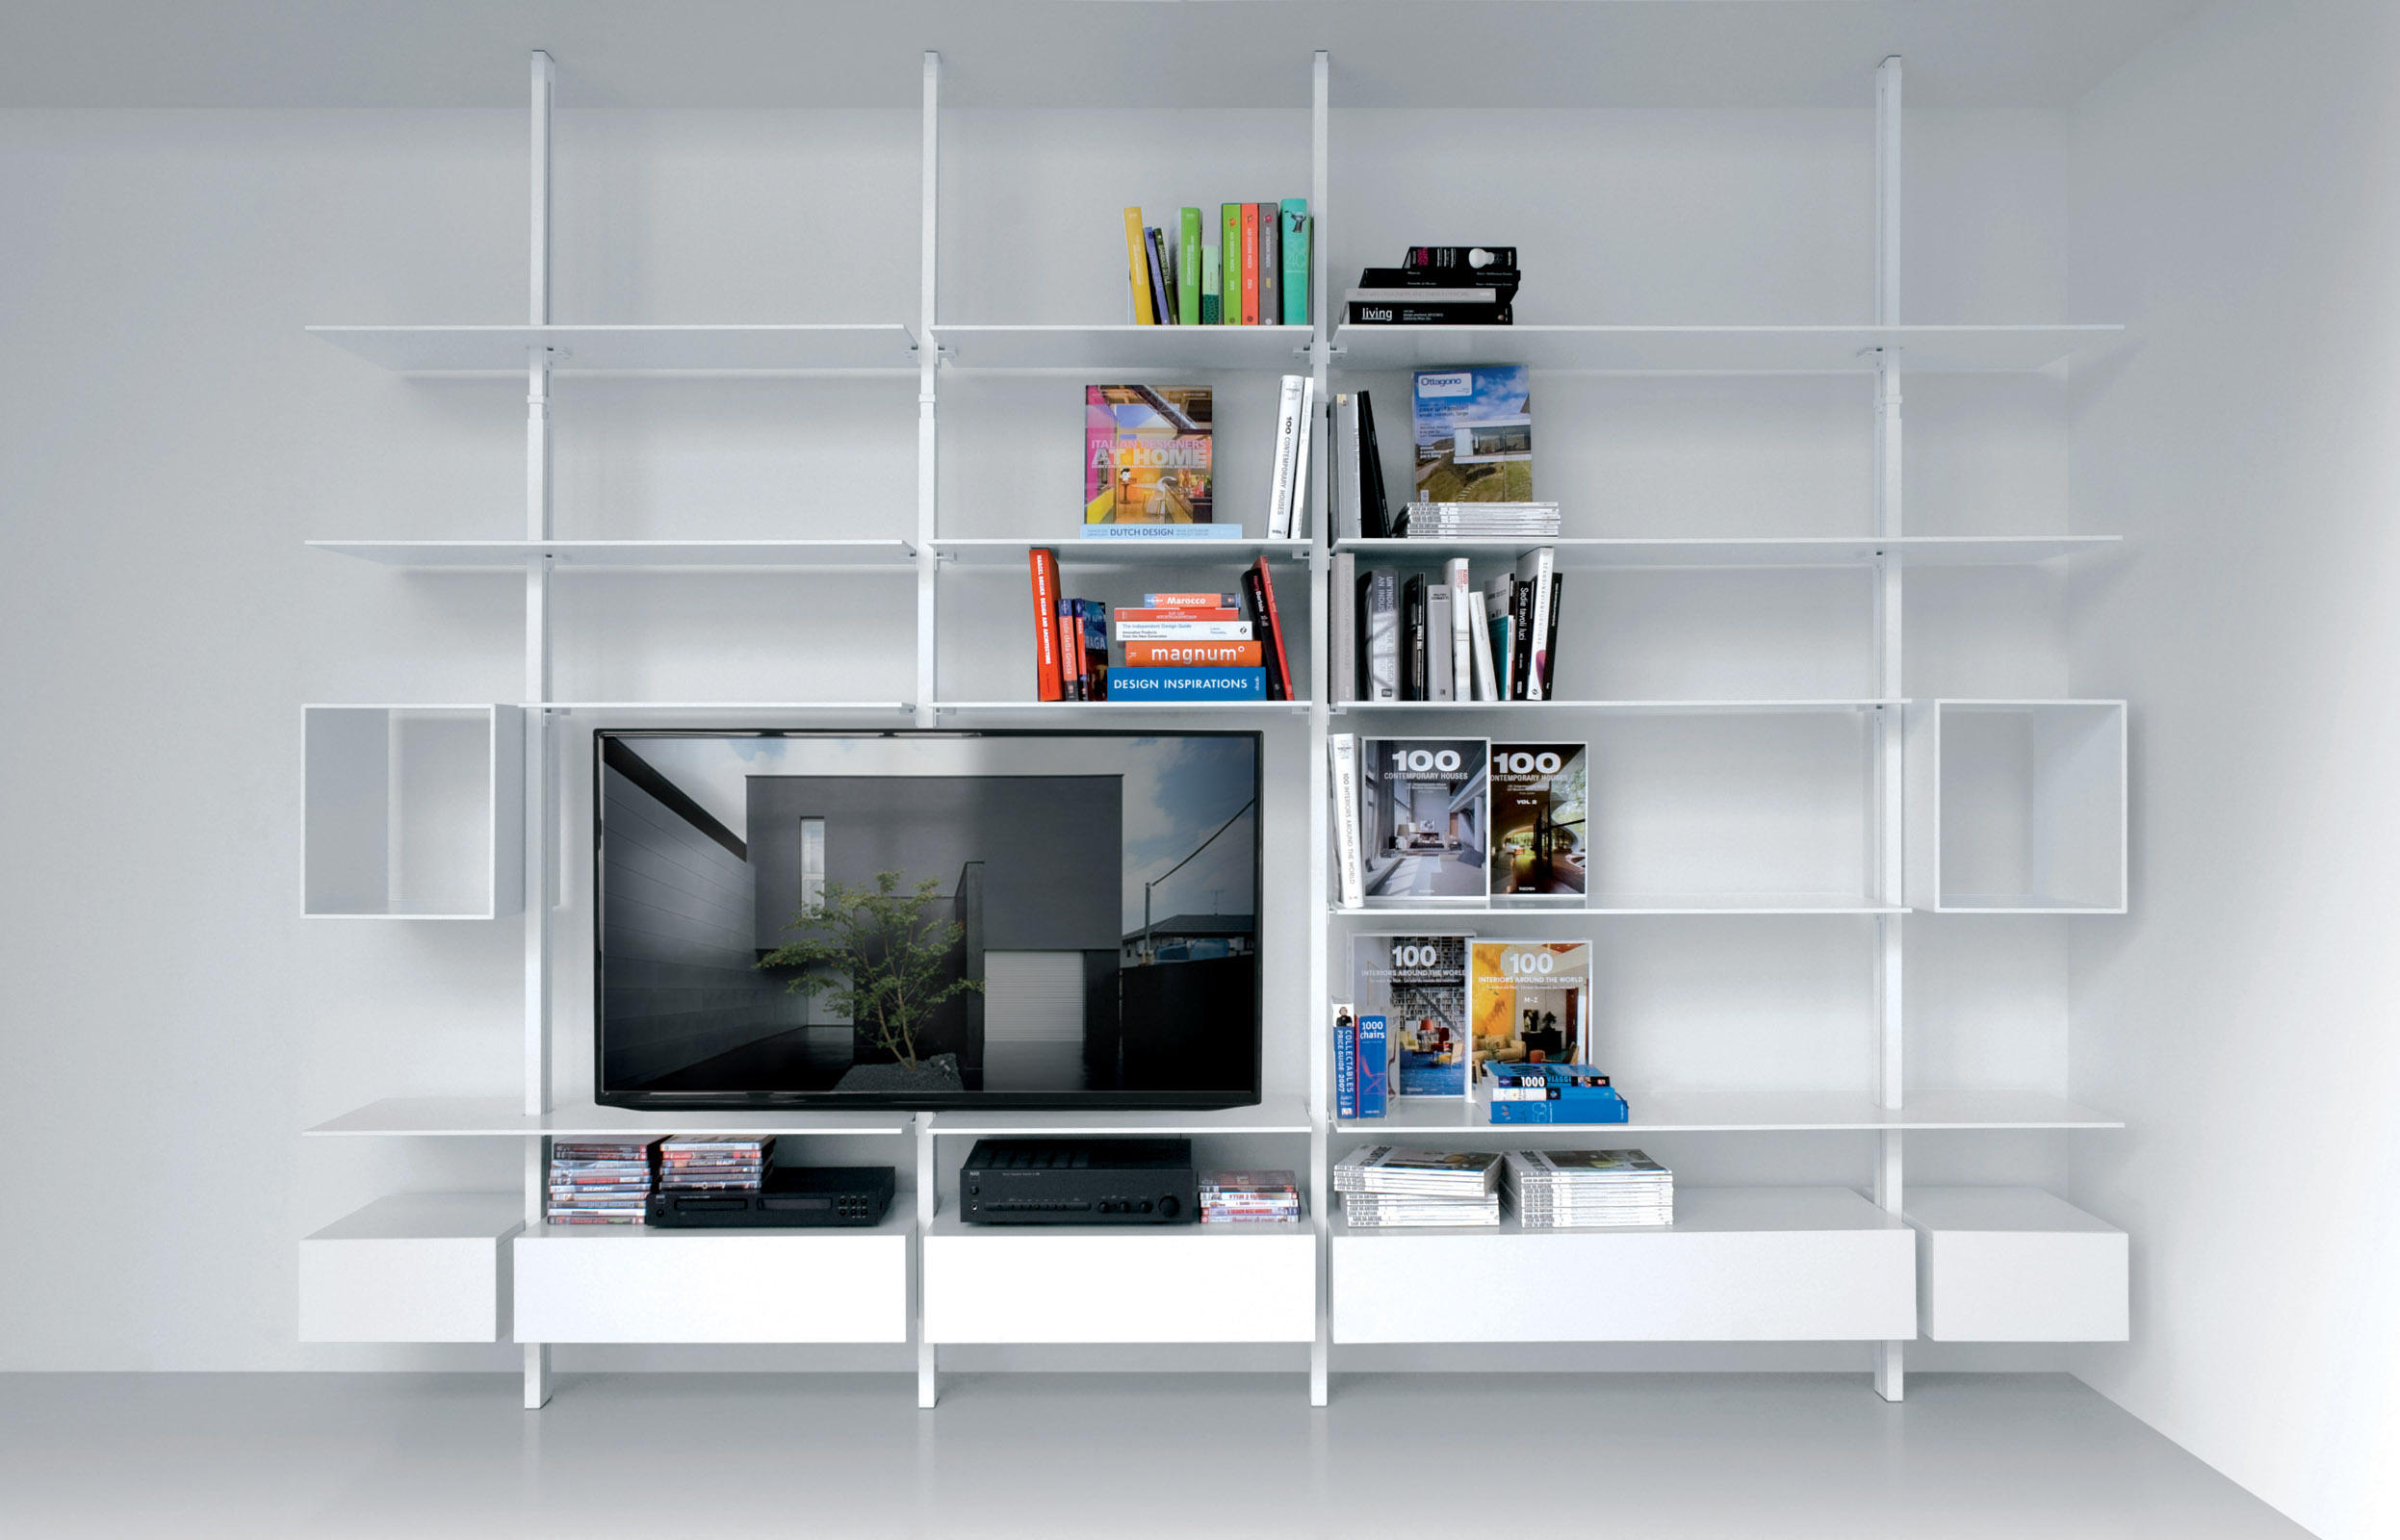 storage for units shelves example office shelving bookcases offices solution asp ren wood